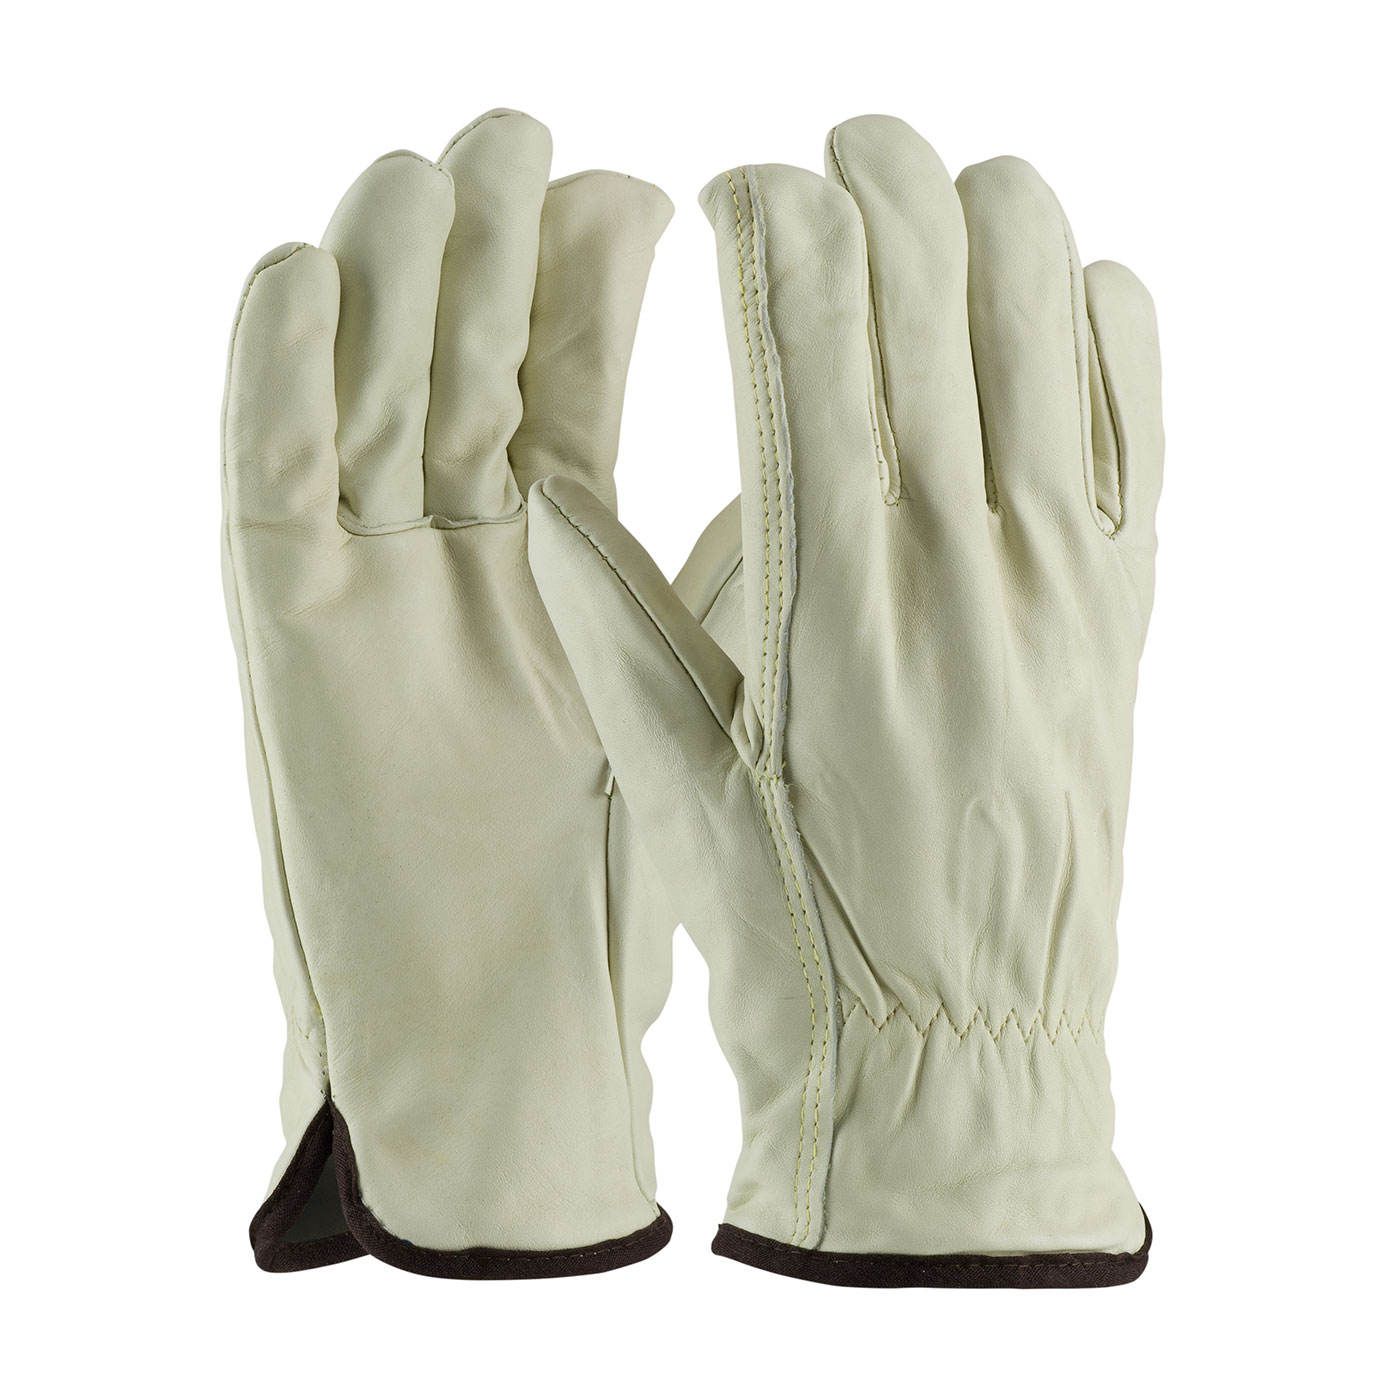 PIP® Premium Grade Top Grain Cowhide Leather Glove with White Thermal Lining w- Straight Thumb #77-218